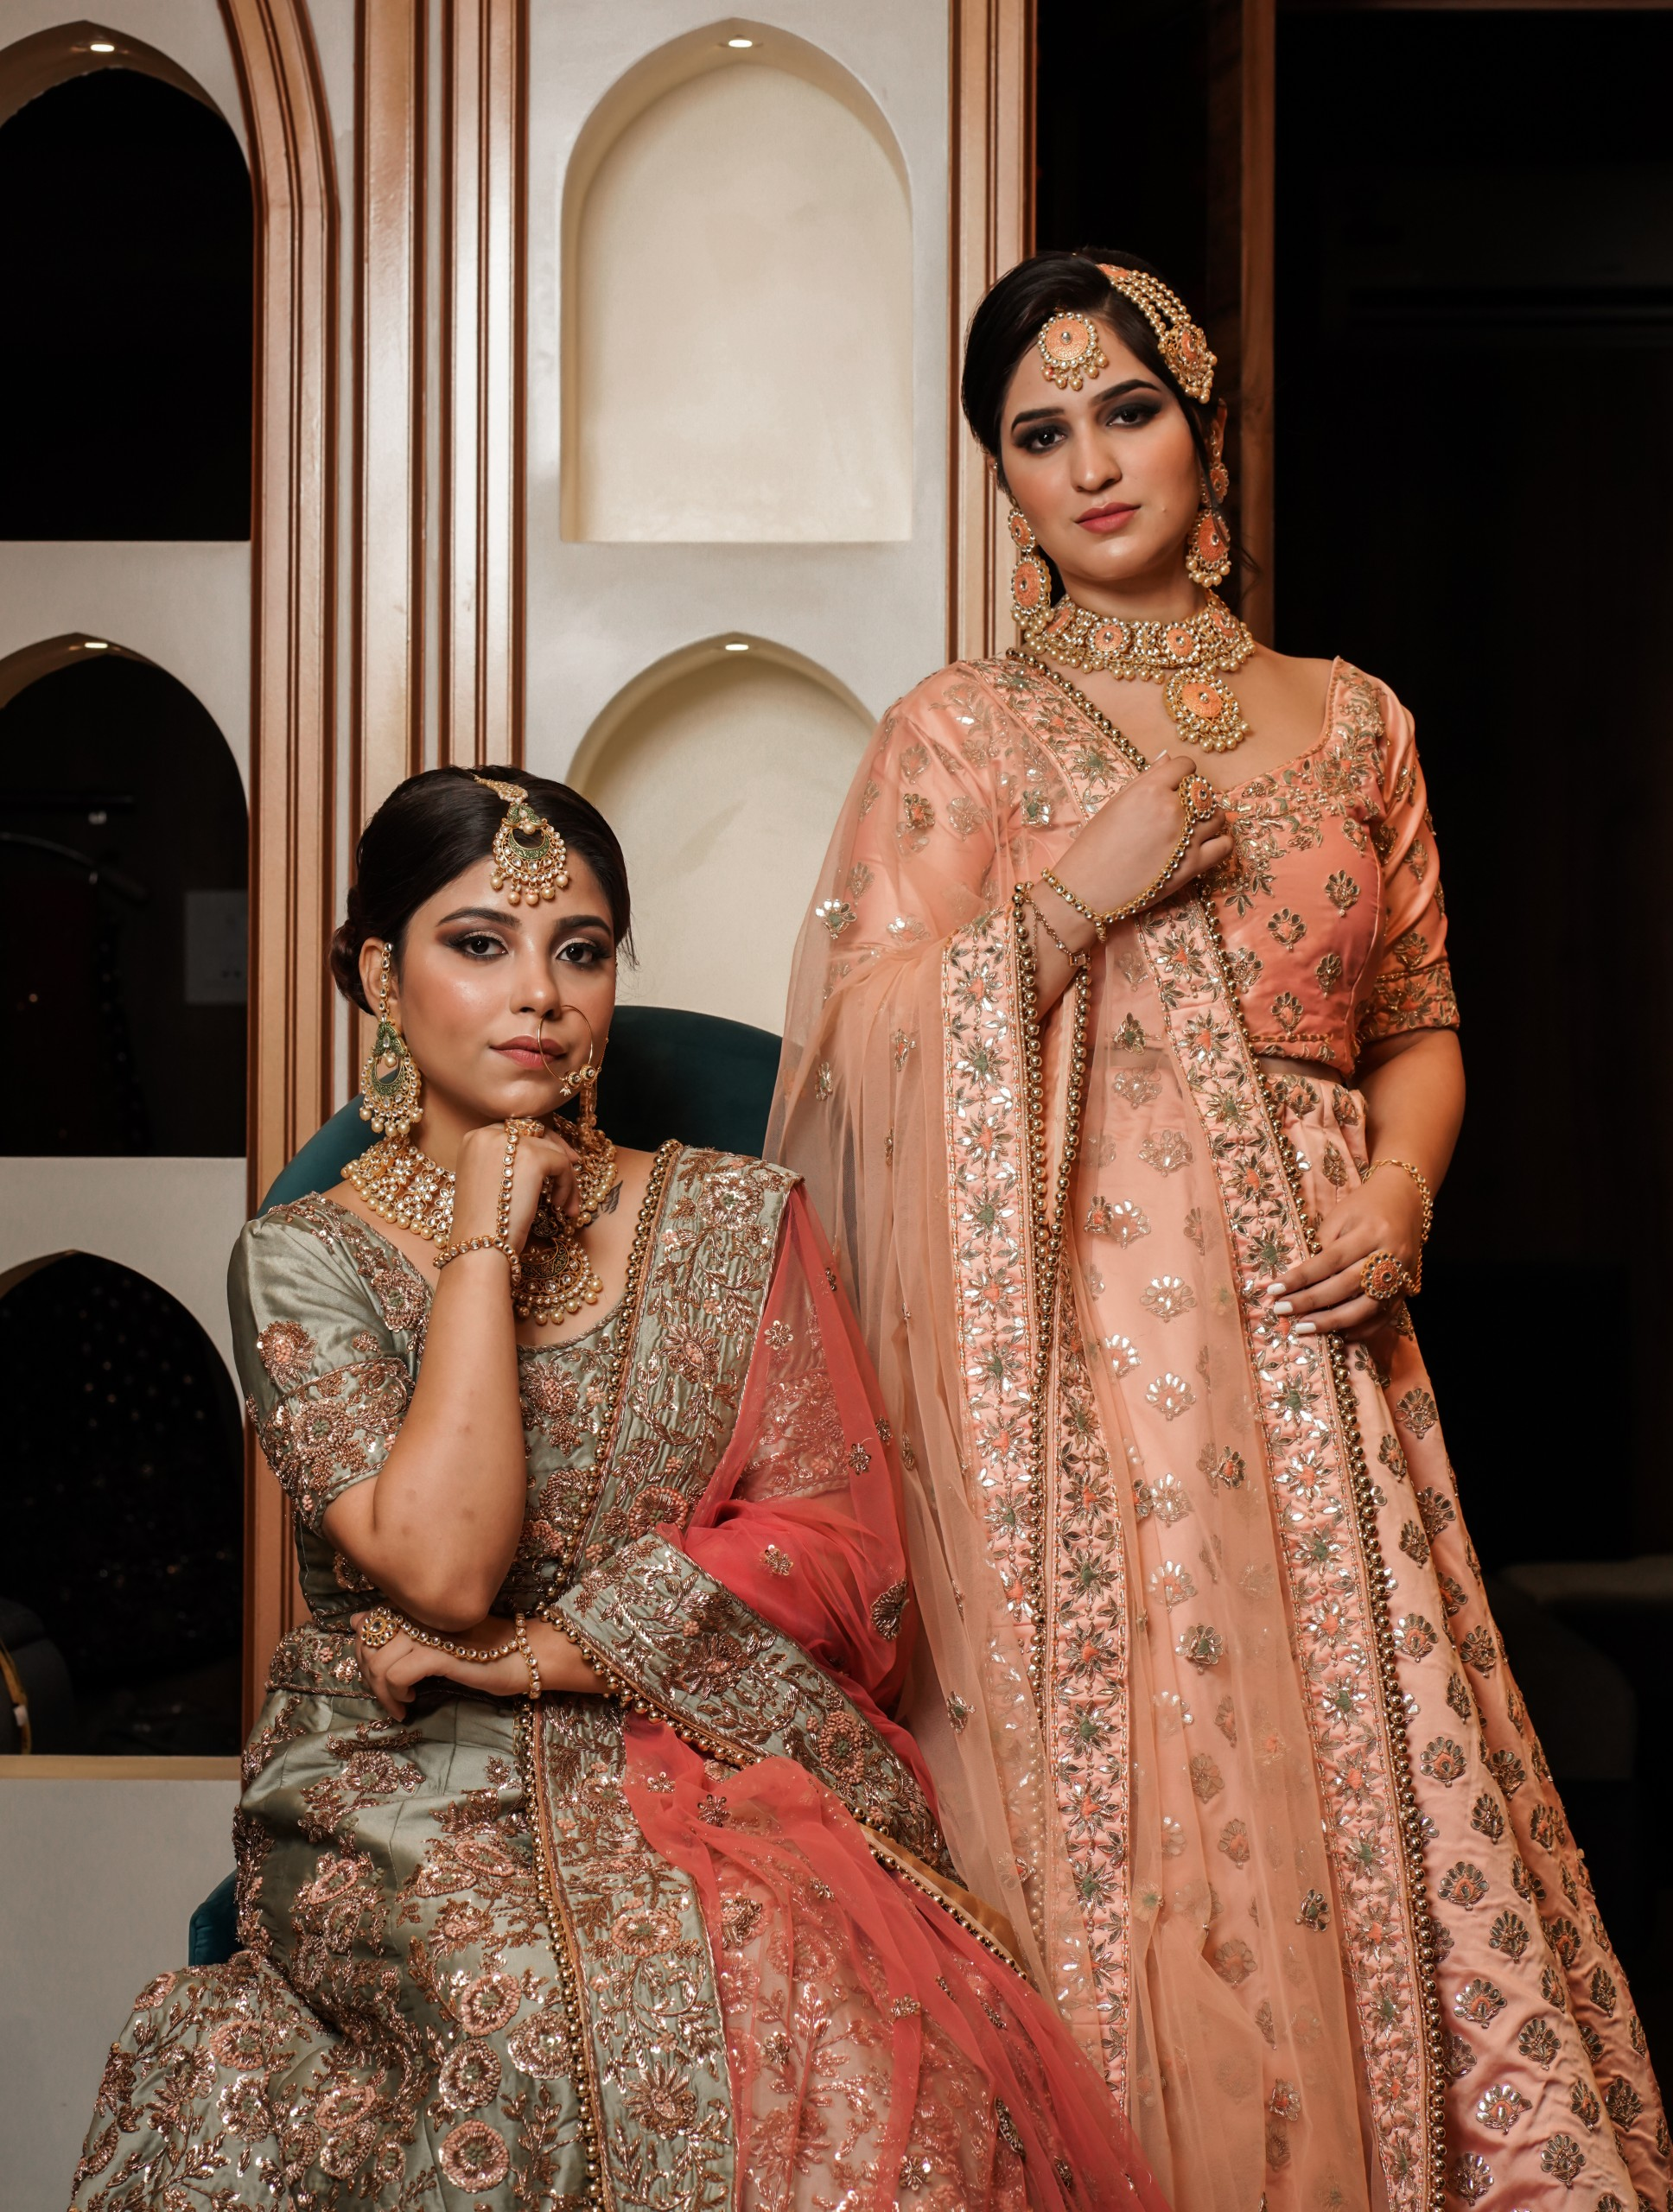 Indian Brides on Sari